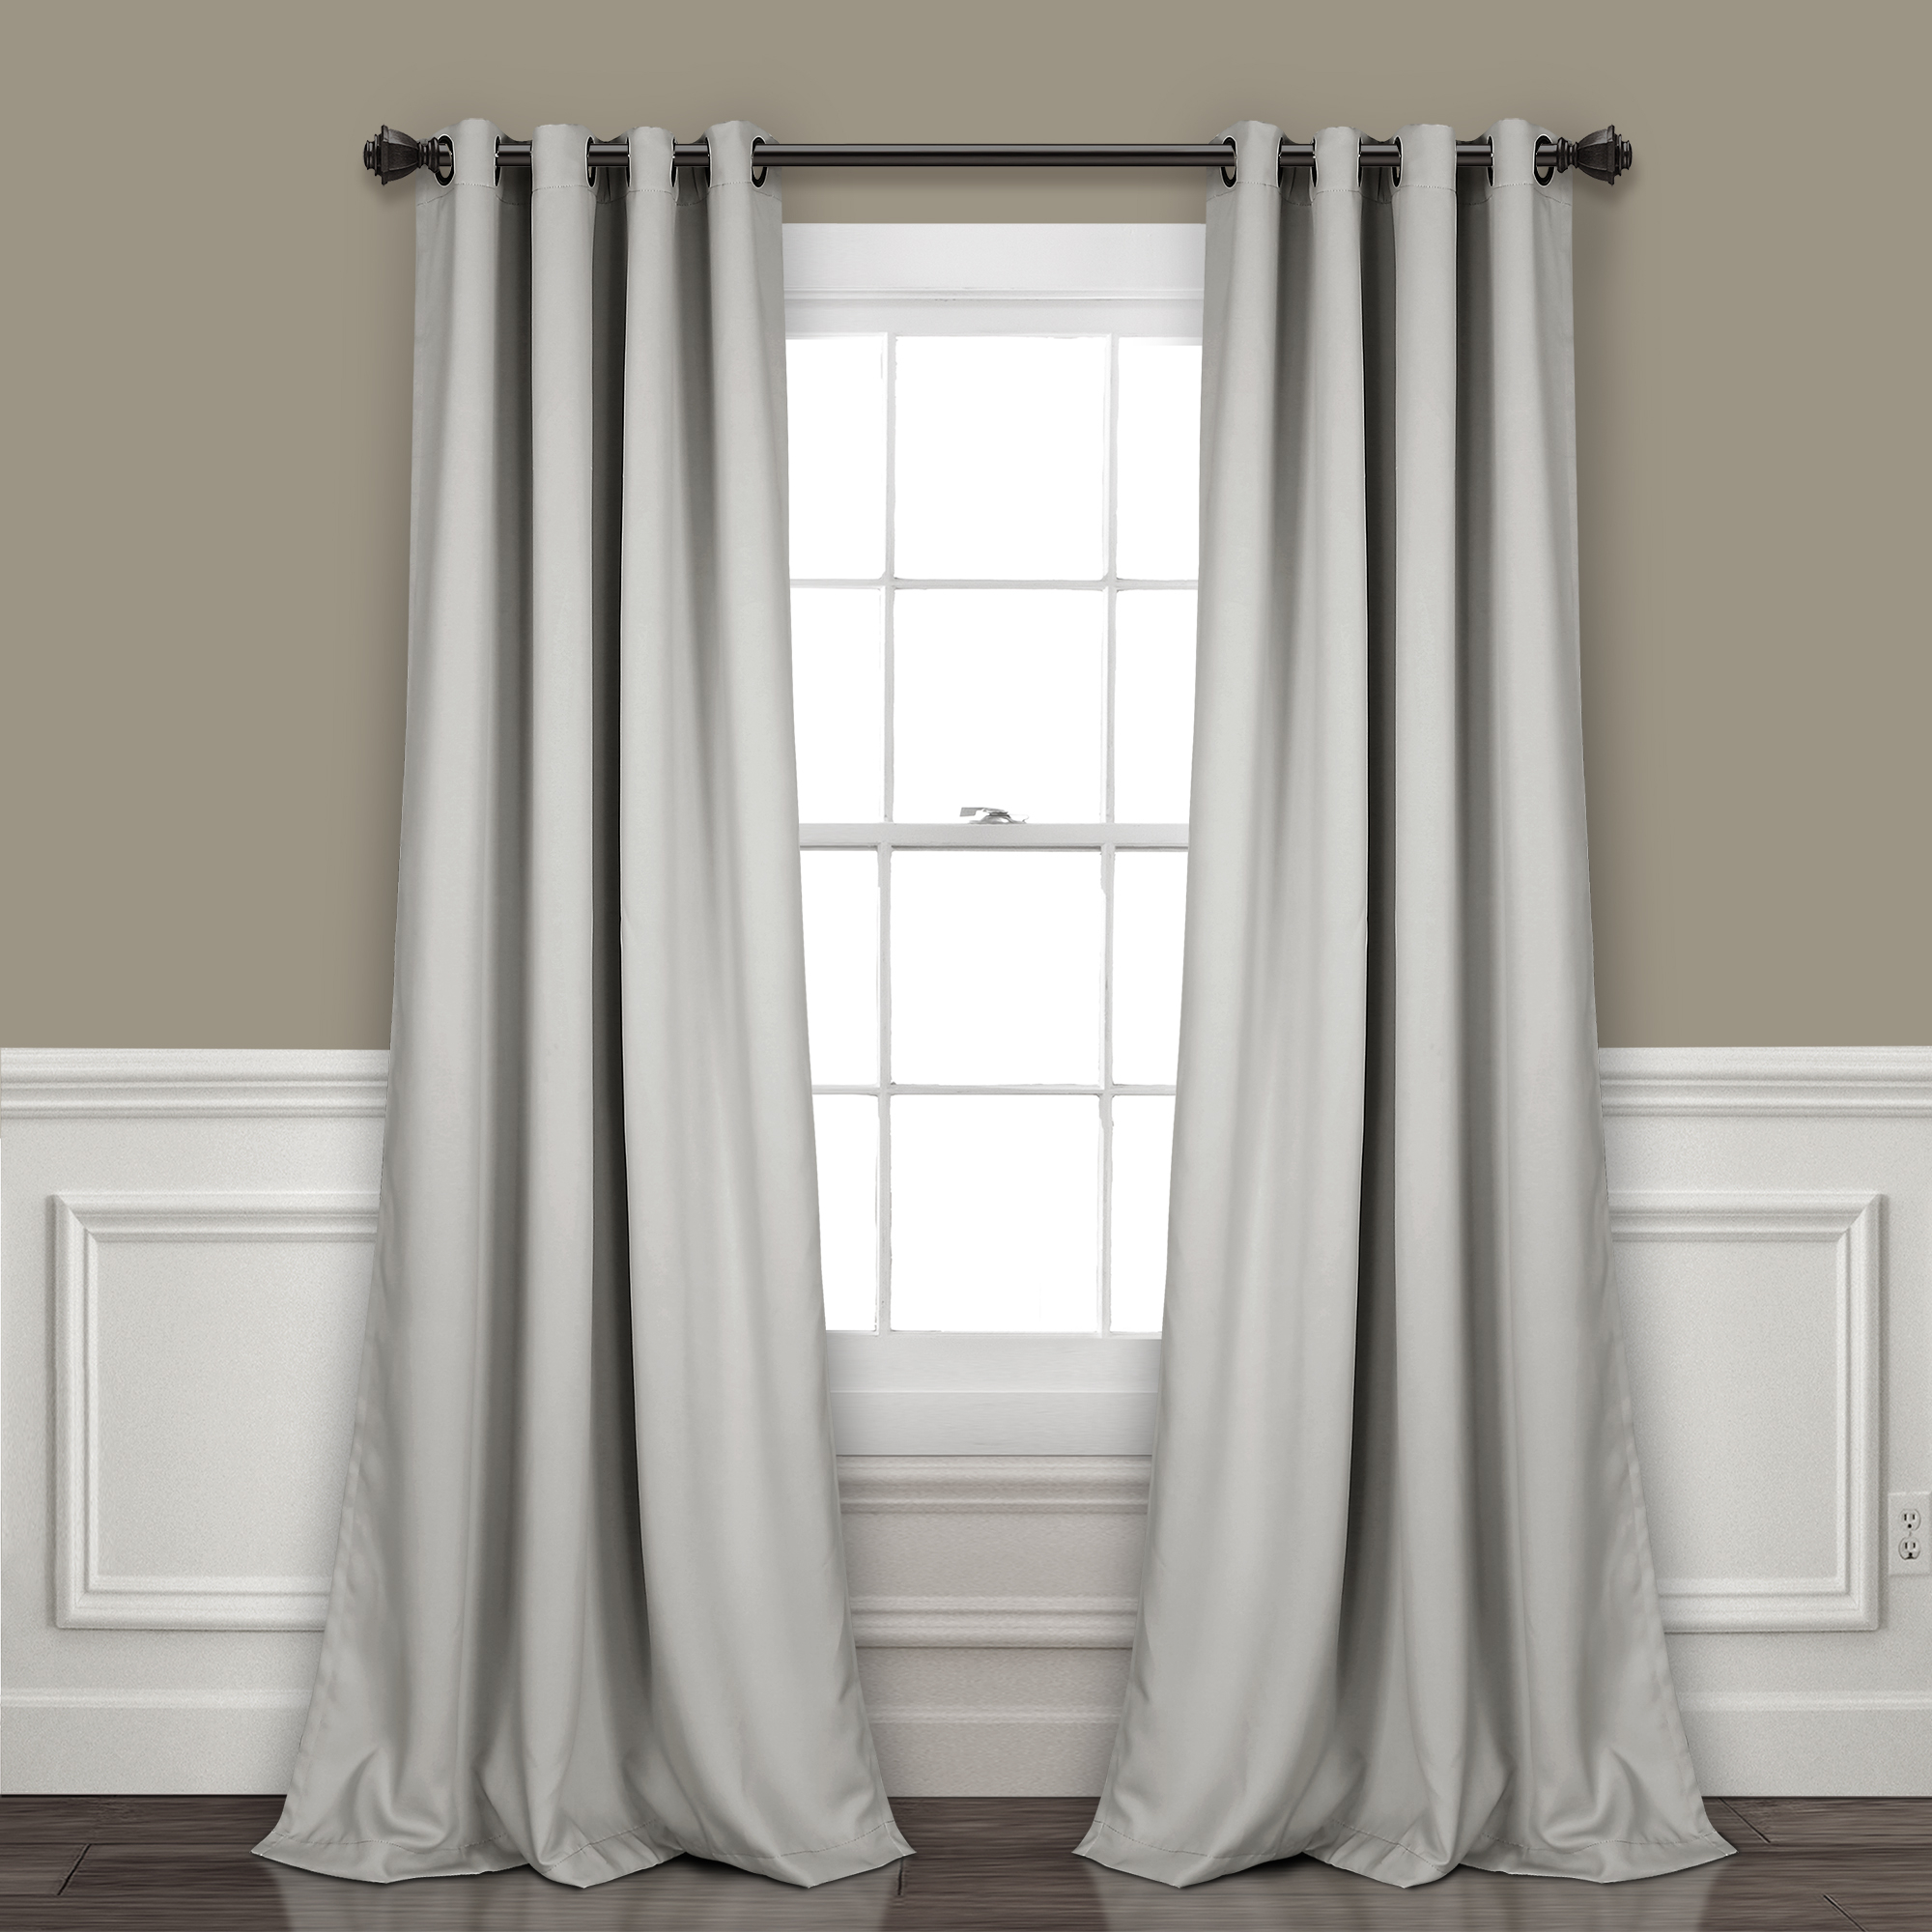 Famous Insulated Grommet Blackout Curtain Panel Pairs With Regard To Lush Decor Insulated Grommet Blackout Curtain Panels Pair (View 4 of 20)